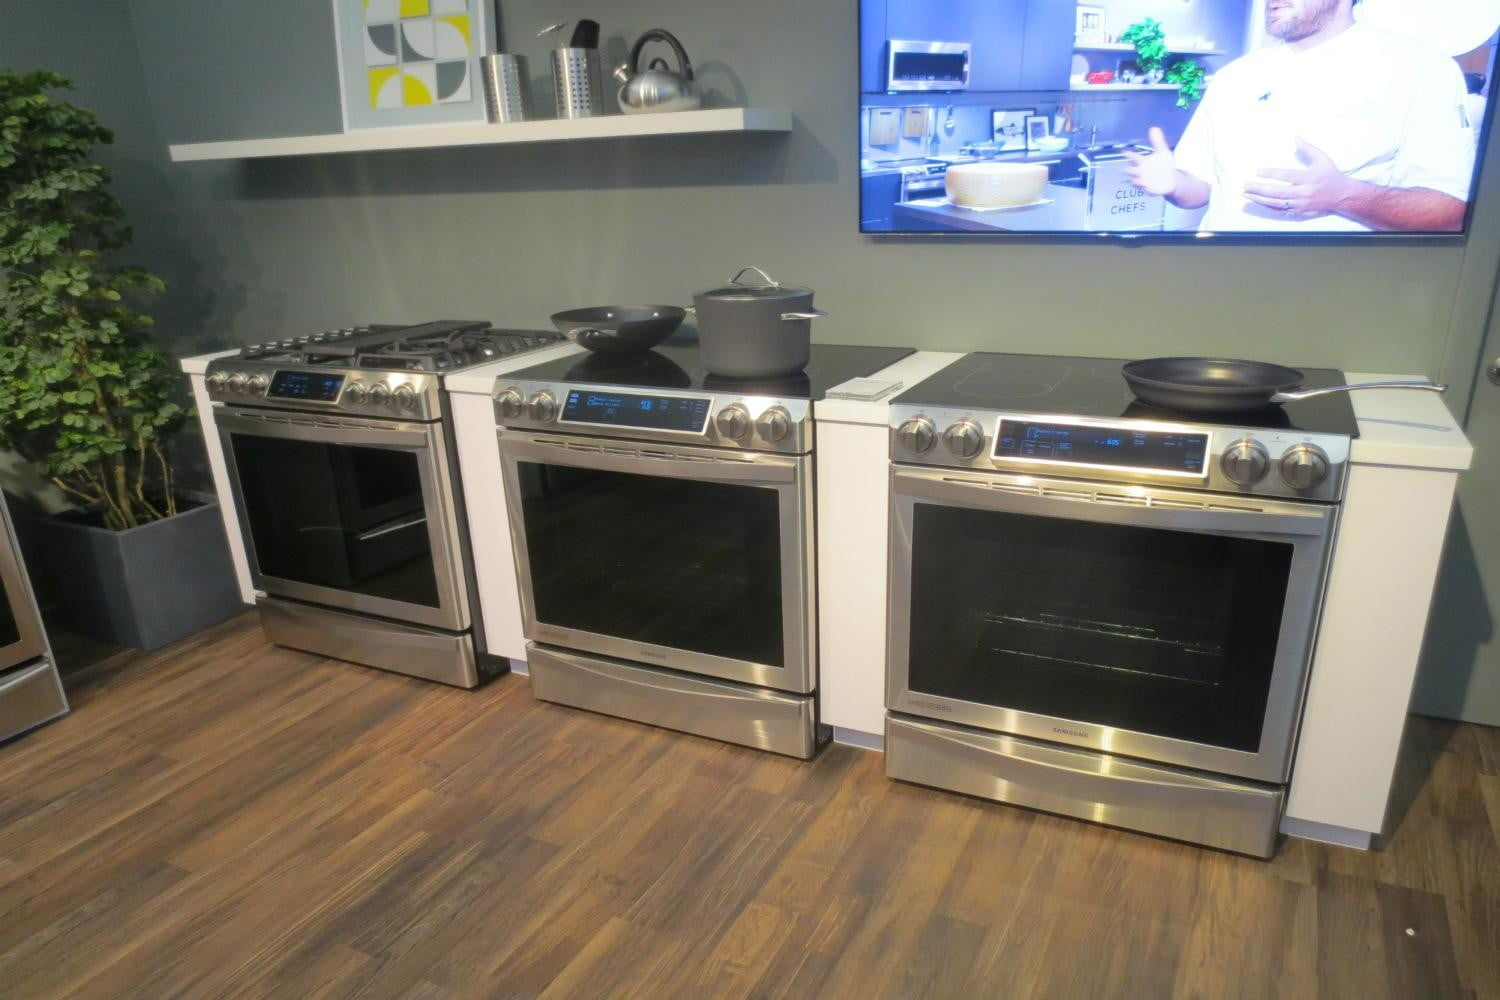 samsung teams top notch chefs celebrate launch new home gear img 0803